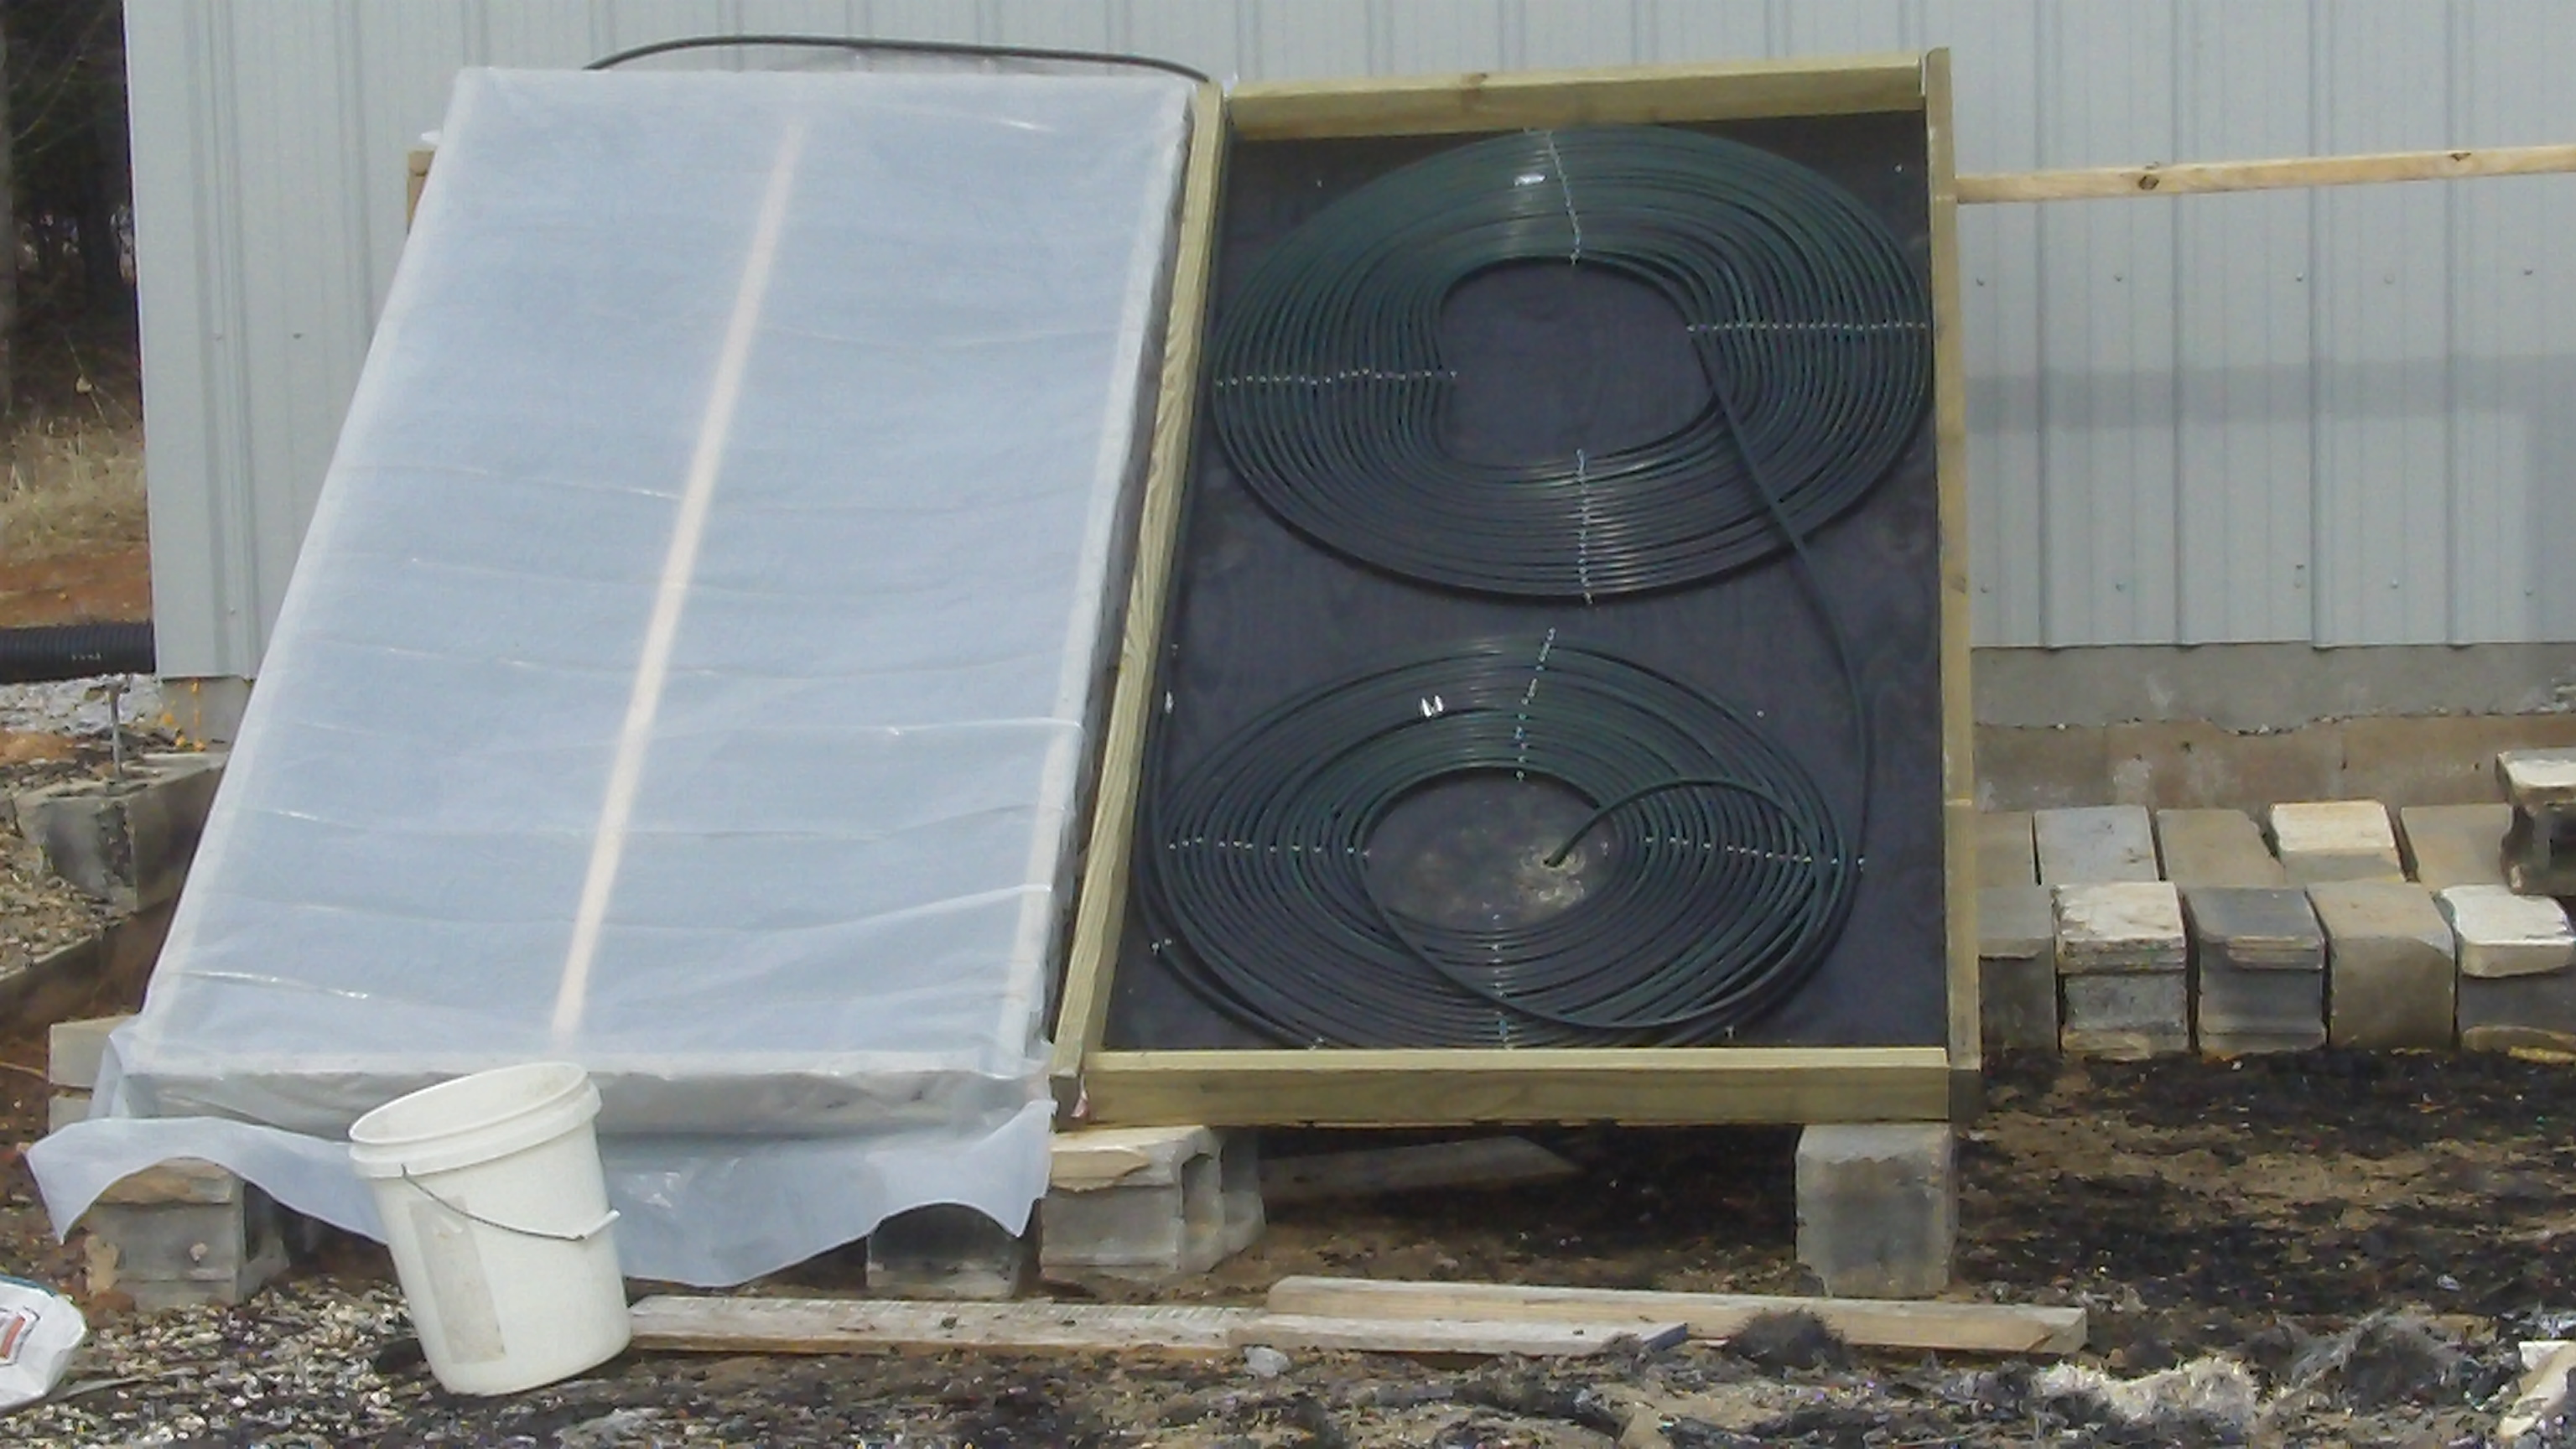 Diy Solar Water Heater 10 Designs And How To Build Them